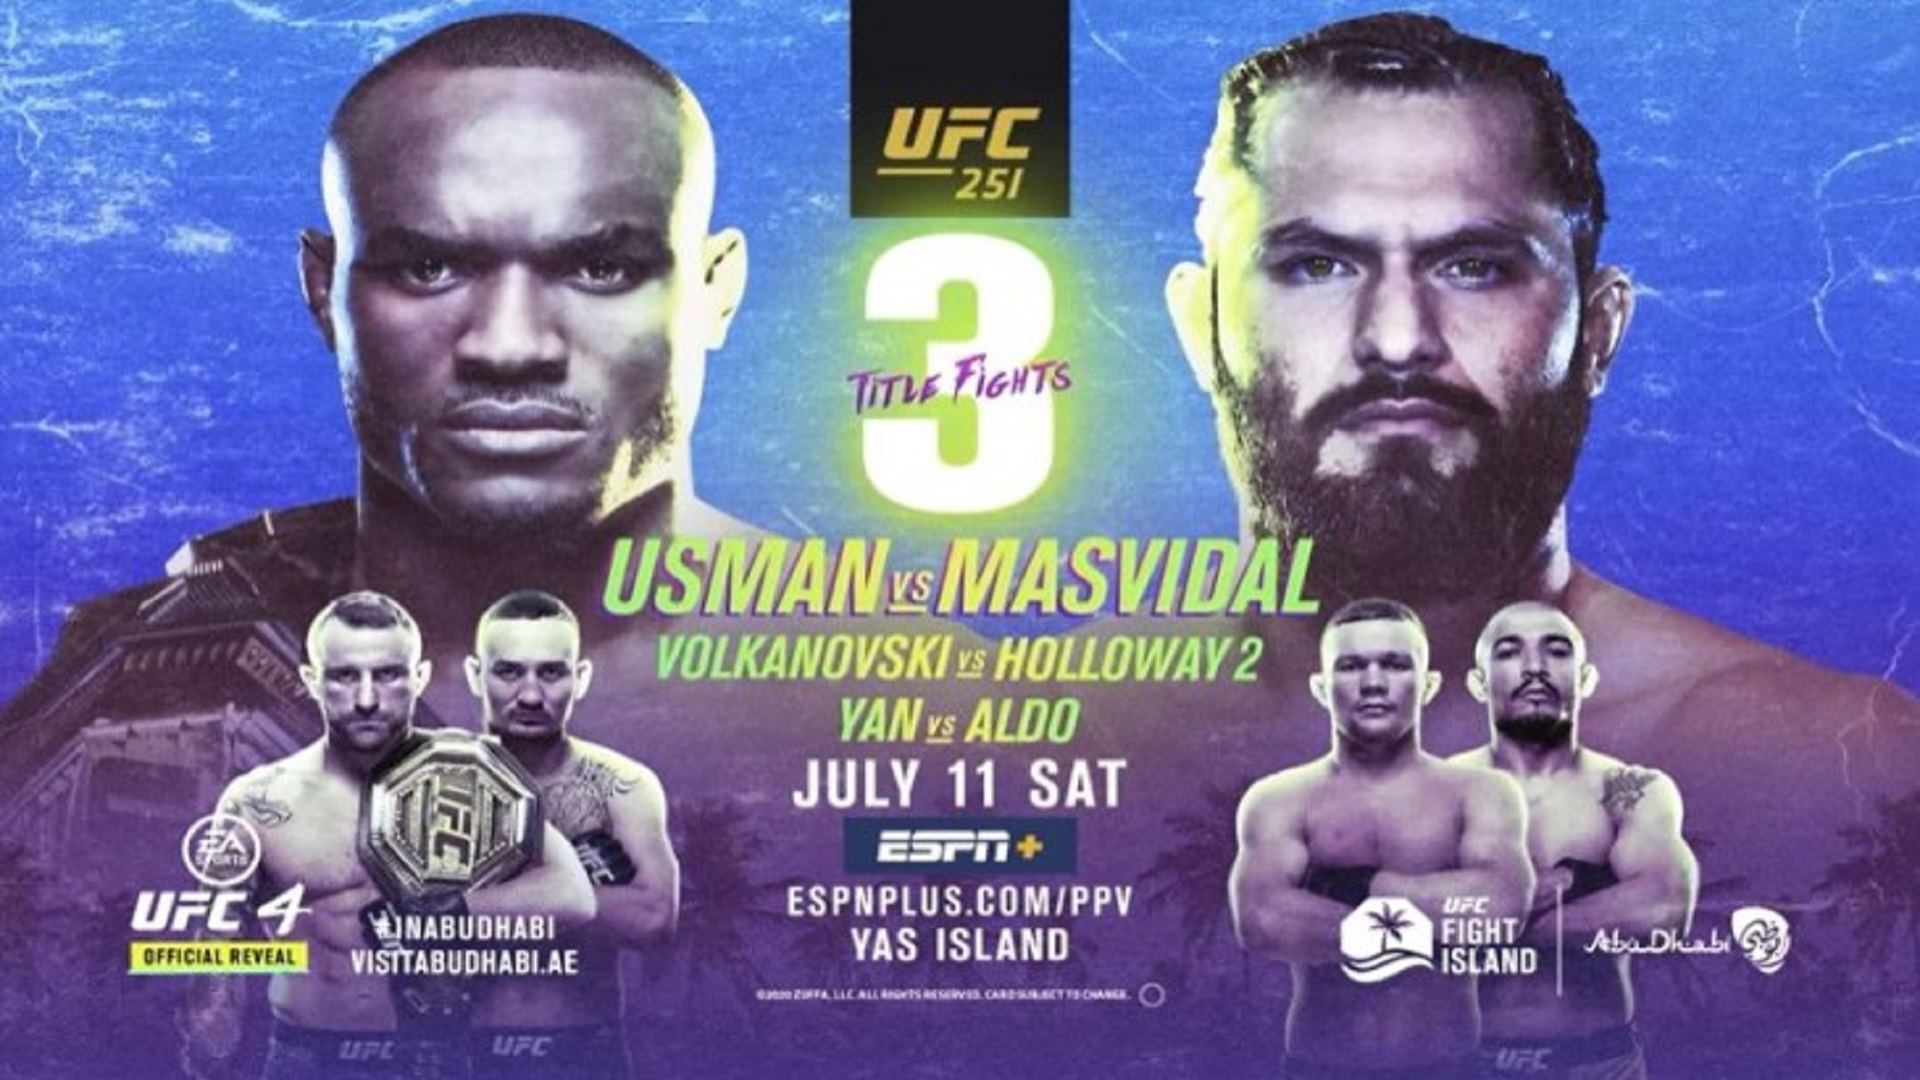 UFC-251-India-Time-UFC-Fight-Island